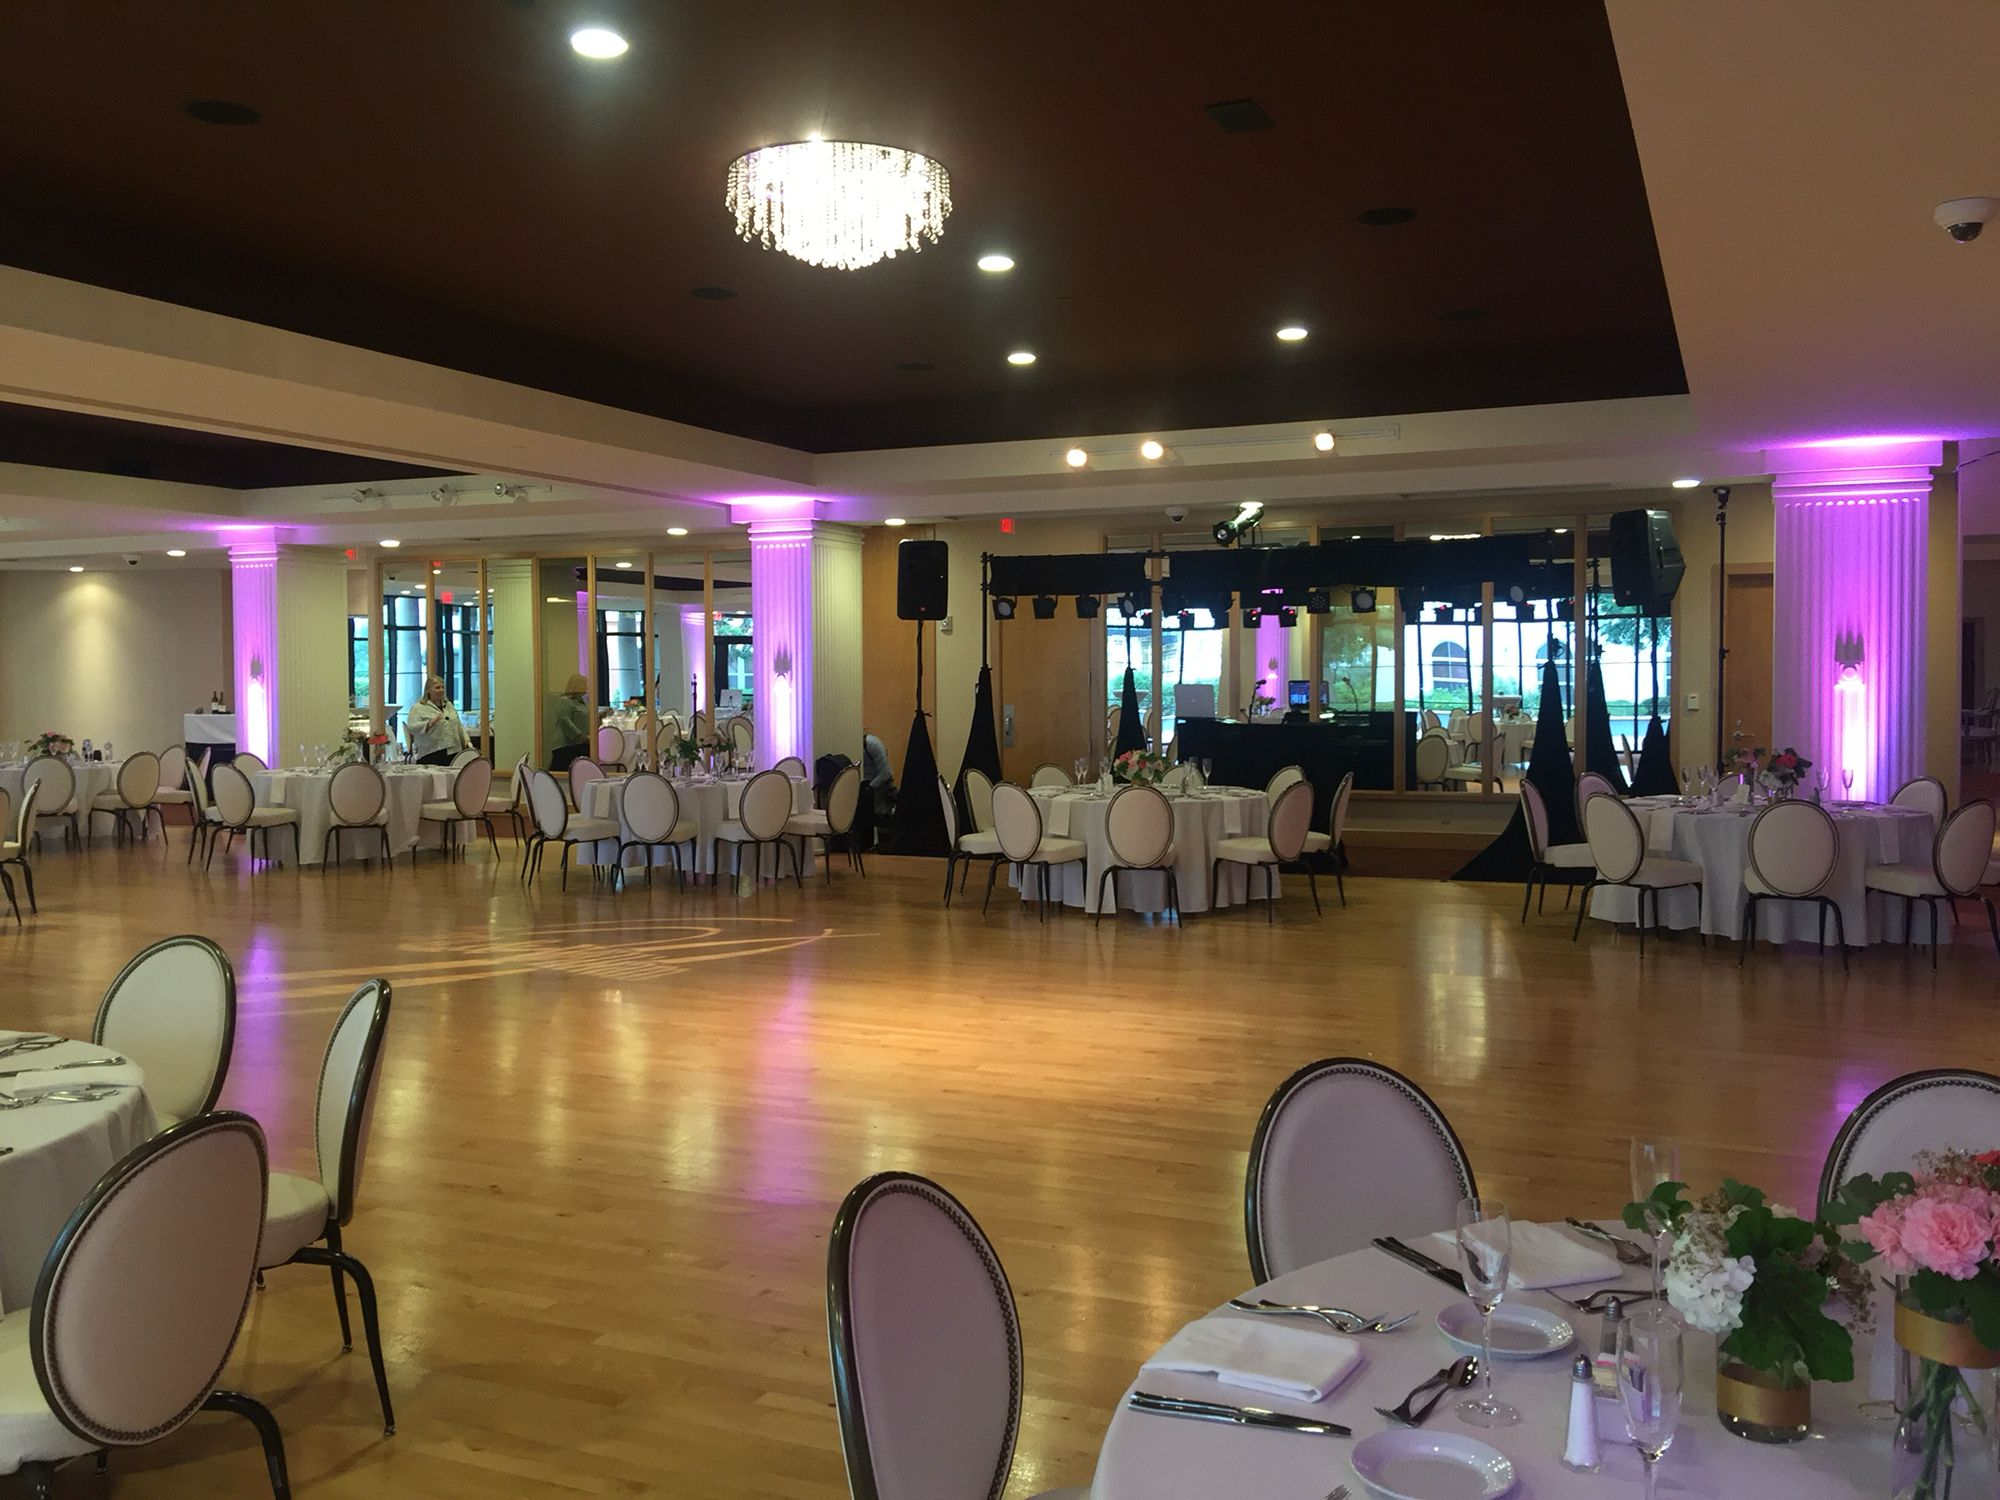 Eilan Hotel and Spa   Sound, Stage and Up-Lights   Pinterest   Stage